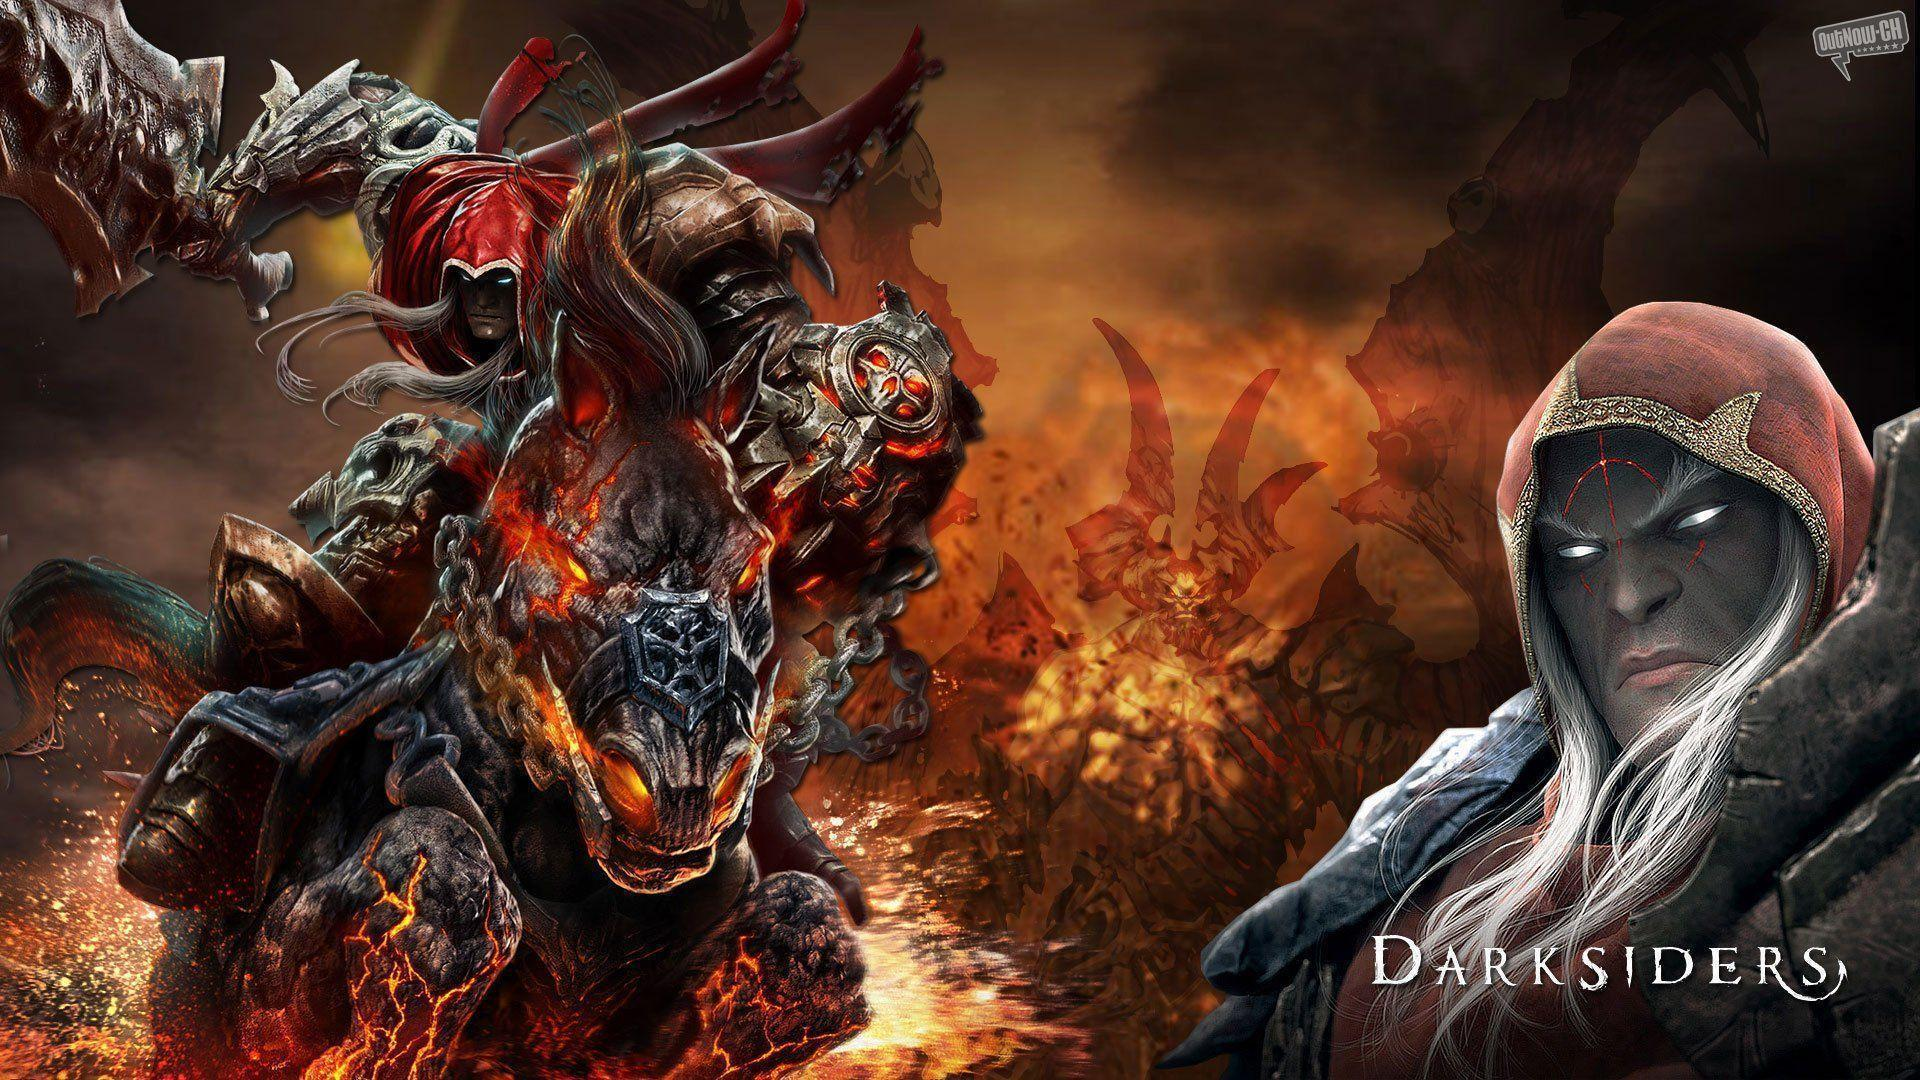 Darksiders Wallpapers - Wallpaper Cave